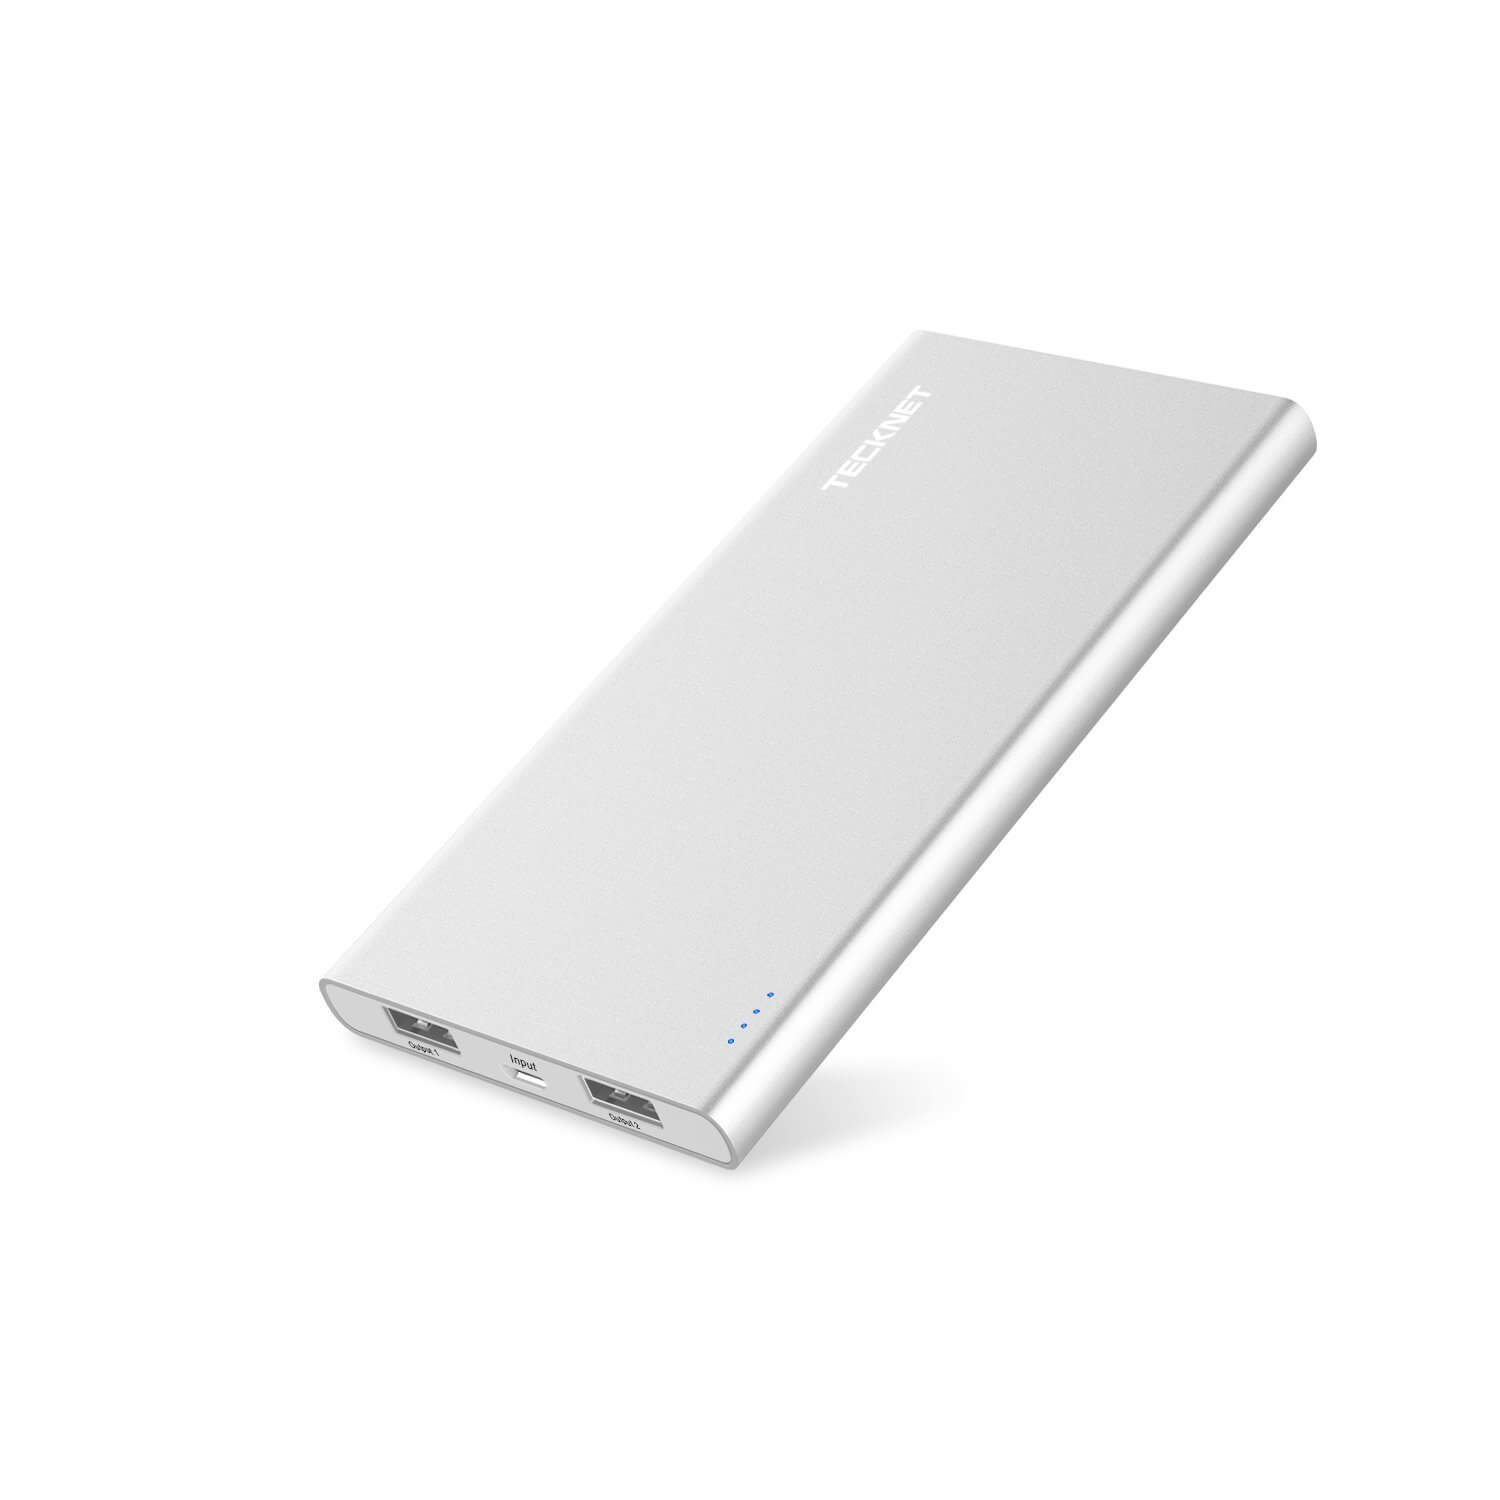 TeckNet iEP1000 PowerCrest C1 10000mAh Fast Portable Charger Battery Pack (silver)